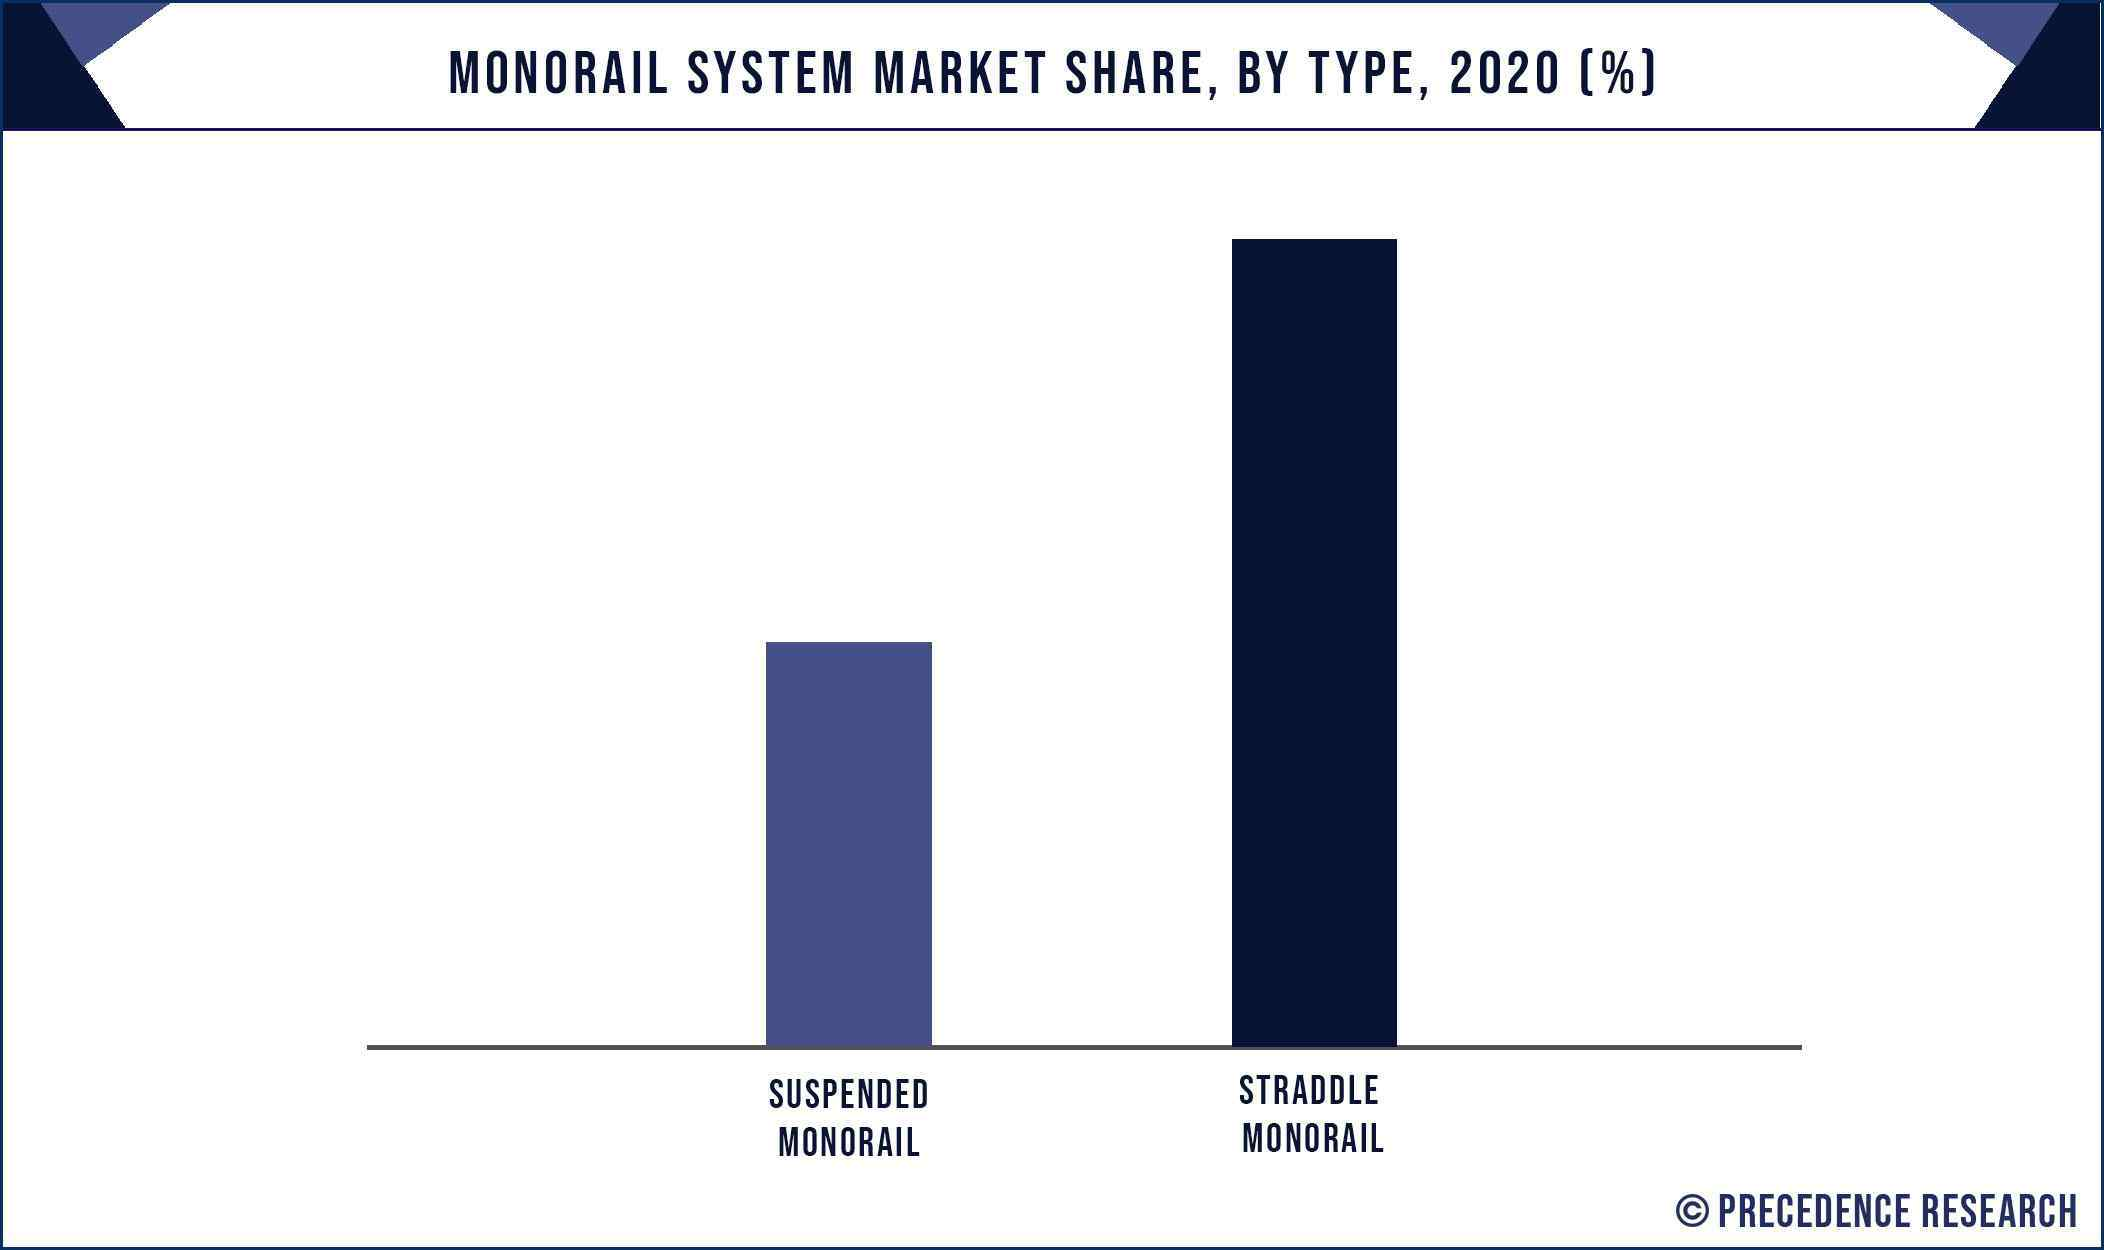 Monorail System Market Share, By Type, 2020 (%)